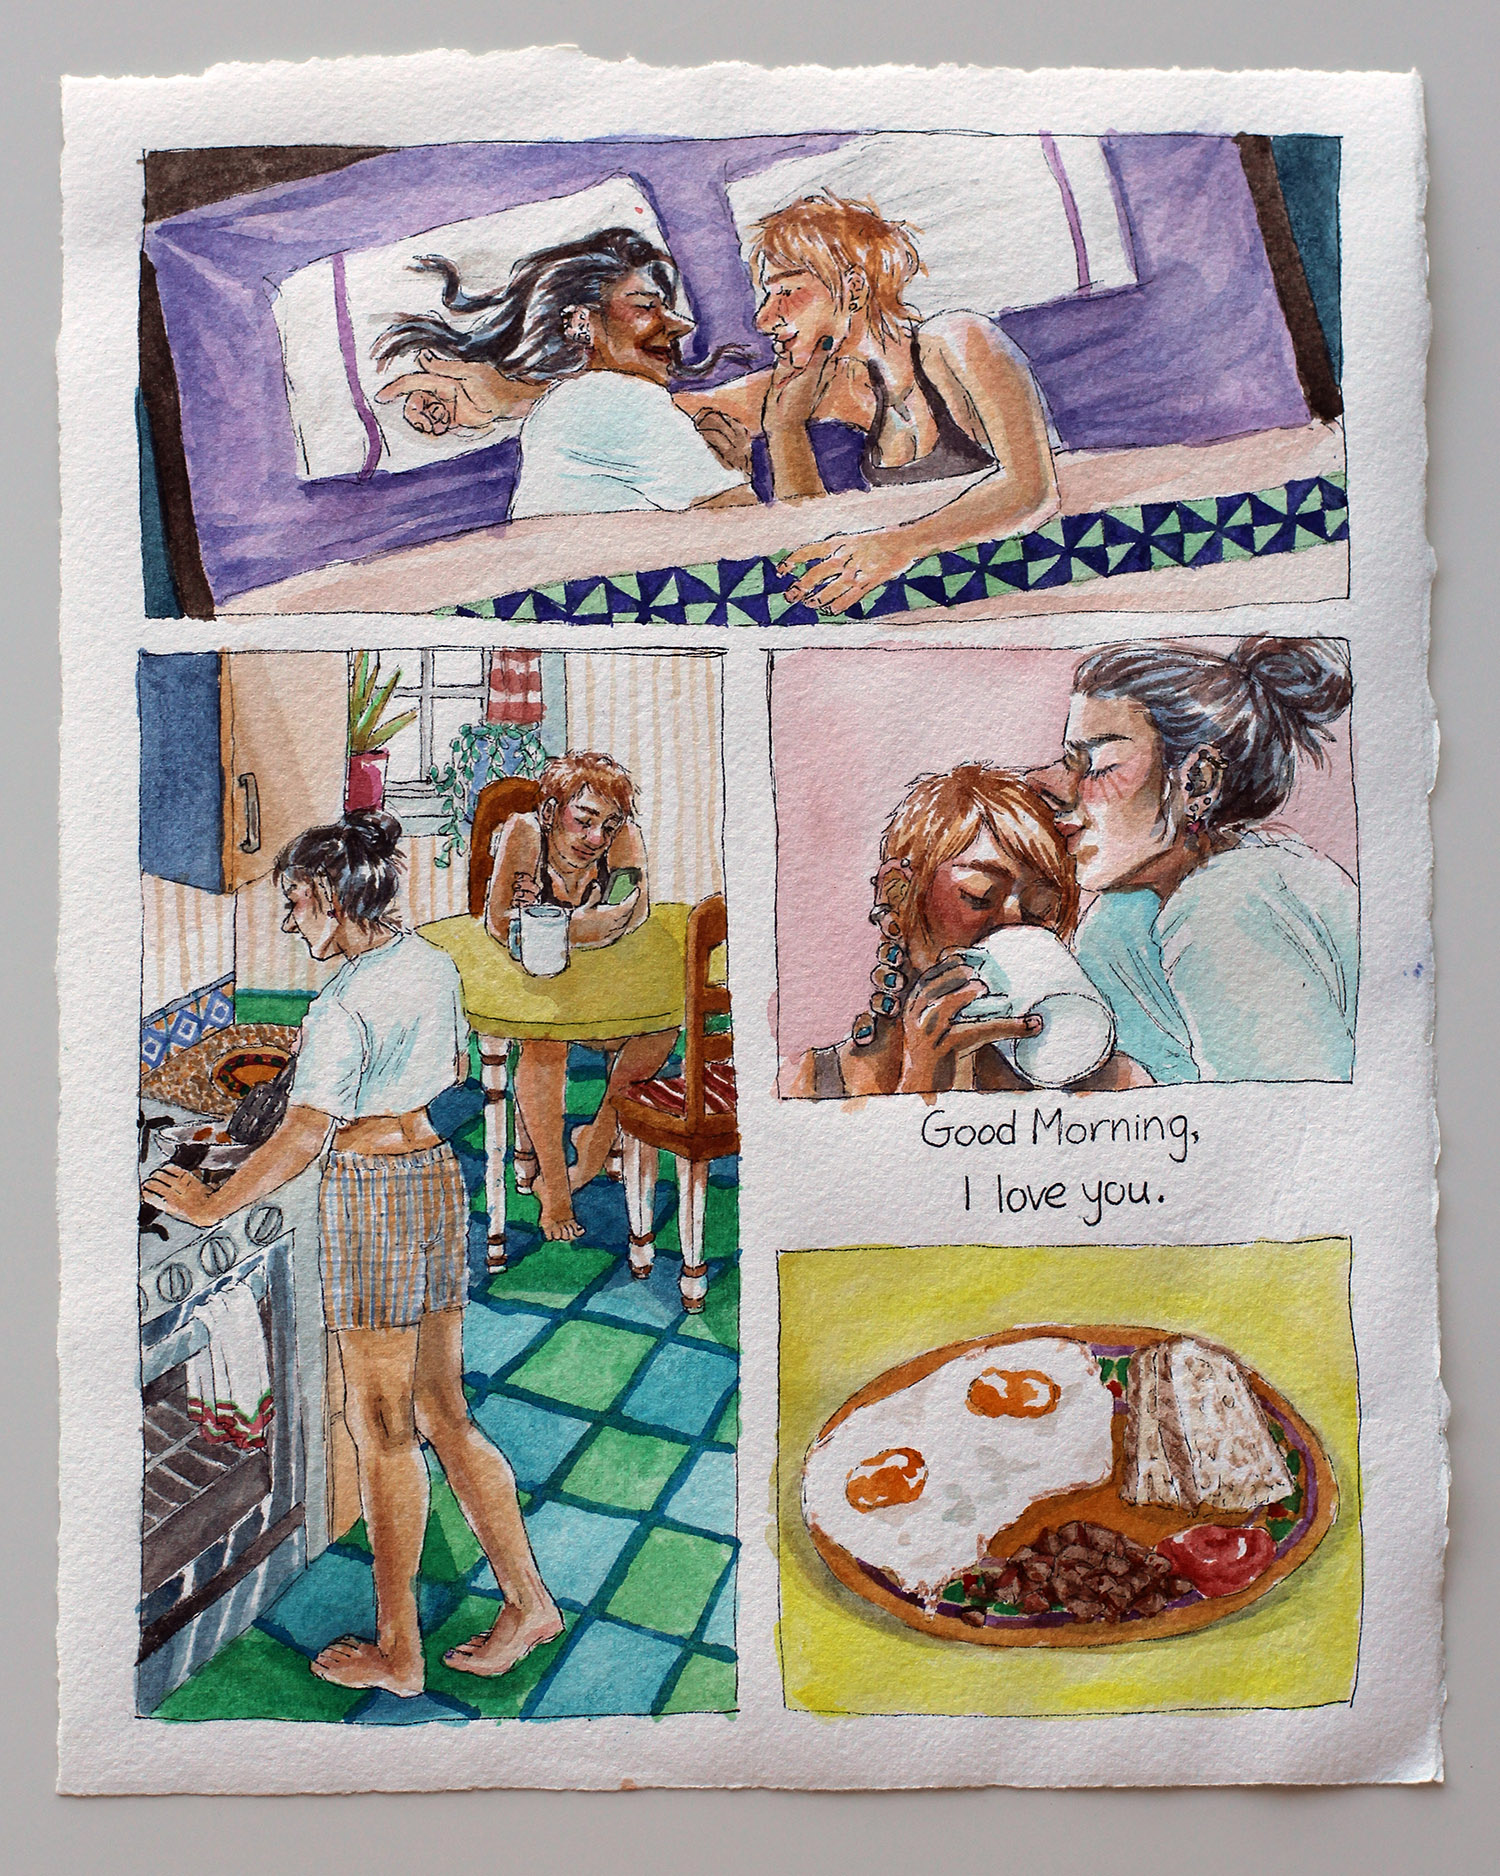 watercolor single page comic. top panel: two women in bed facing each other. left panel: woman makes breakfast while other woman sits at table. right panel, top: woman kissing other woman's forehead. right panel, bottom: plate of eggs, bread, potatoes. in between right panels, text reading 'good morning, i love you'